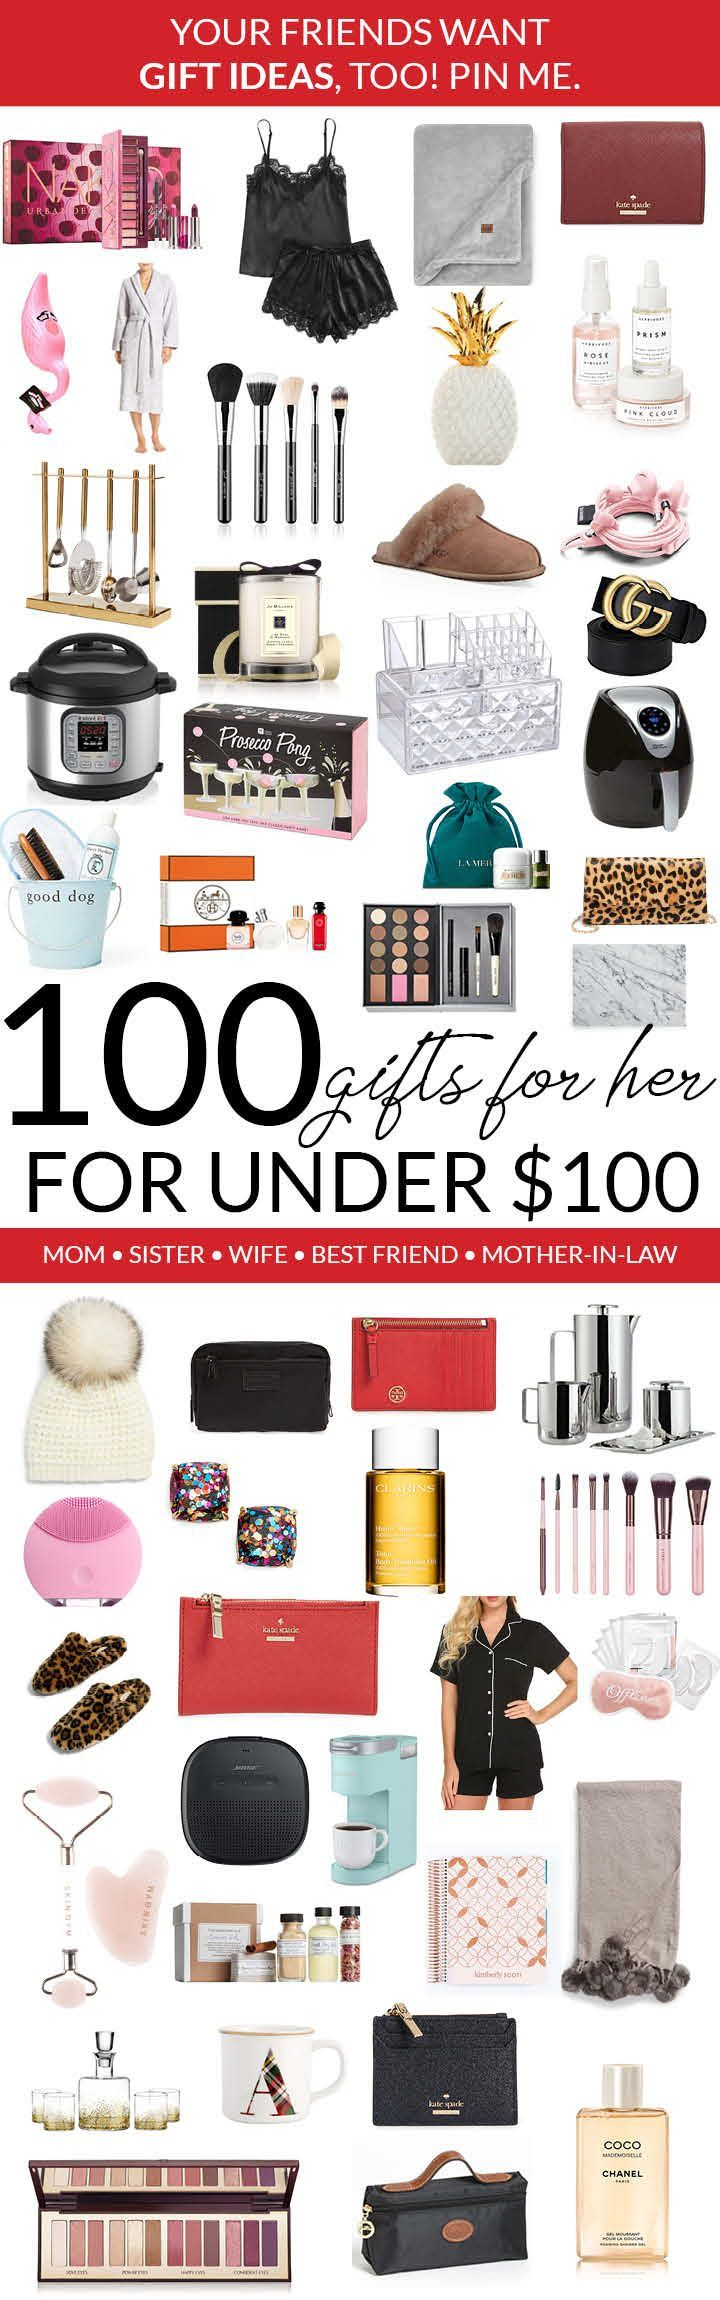 100 Gifts For Her For Under 100 2018 Gift Guide Christmas Ideas Christmas Gifts For Girlfriend Girlfriend Gifts Christmas Gifts For Mom